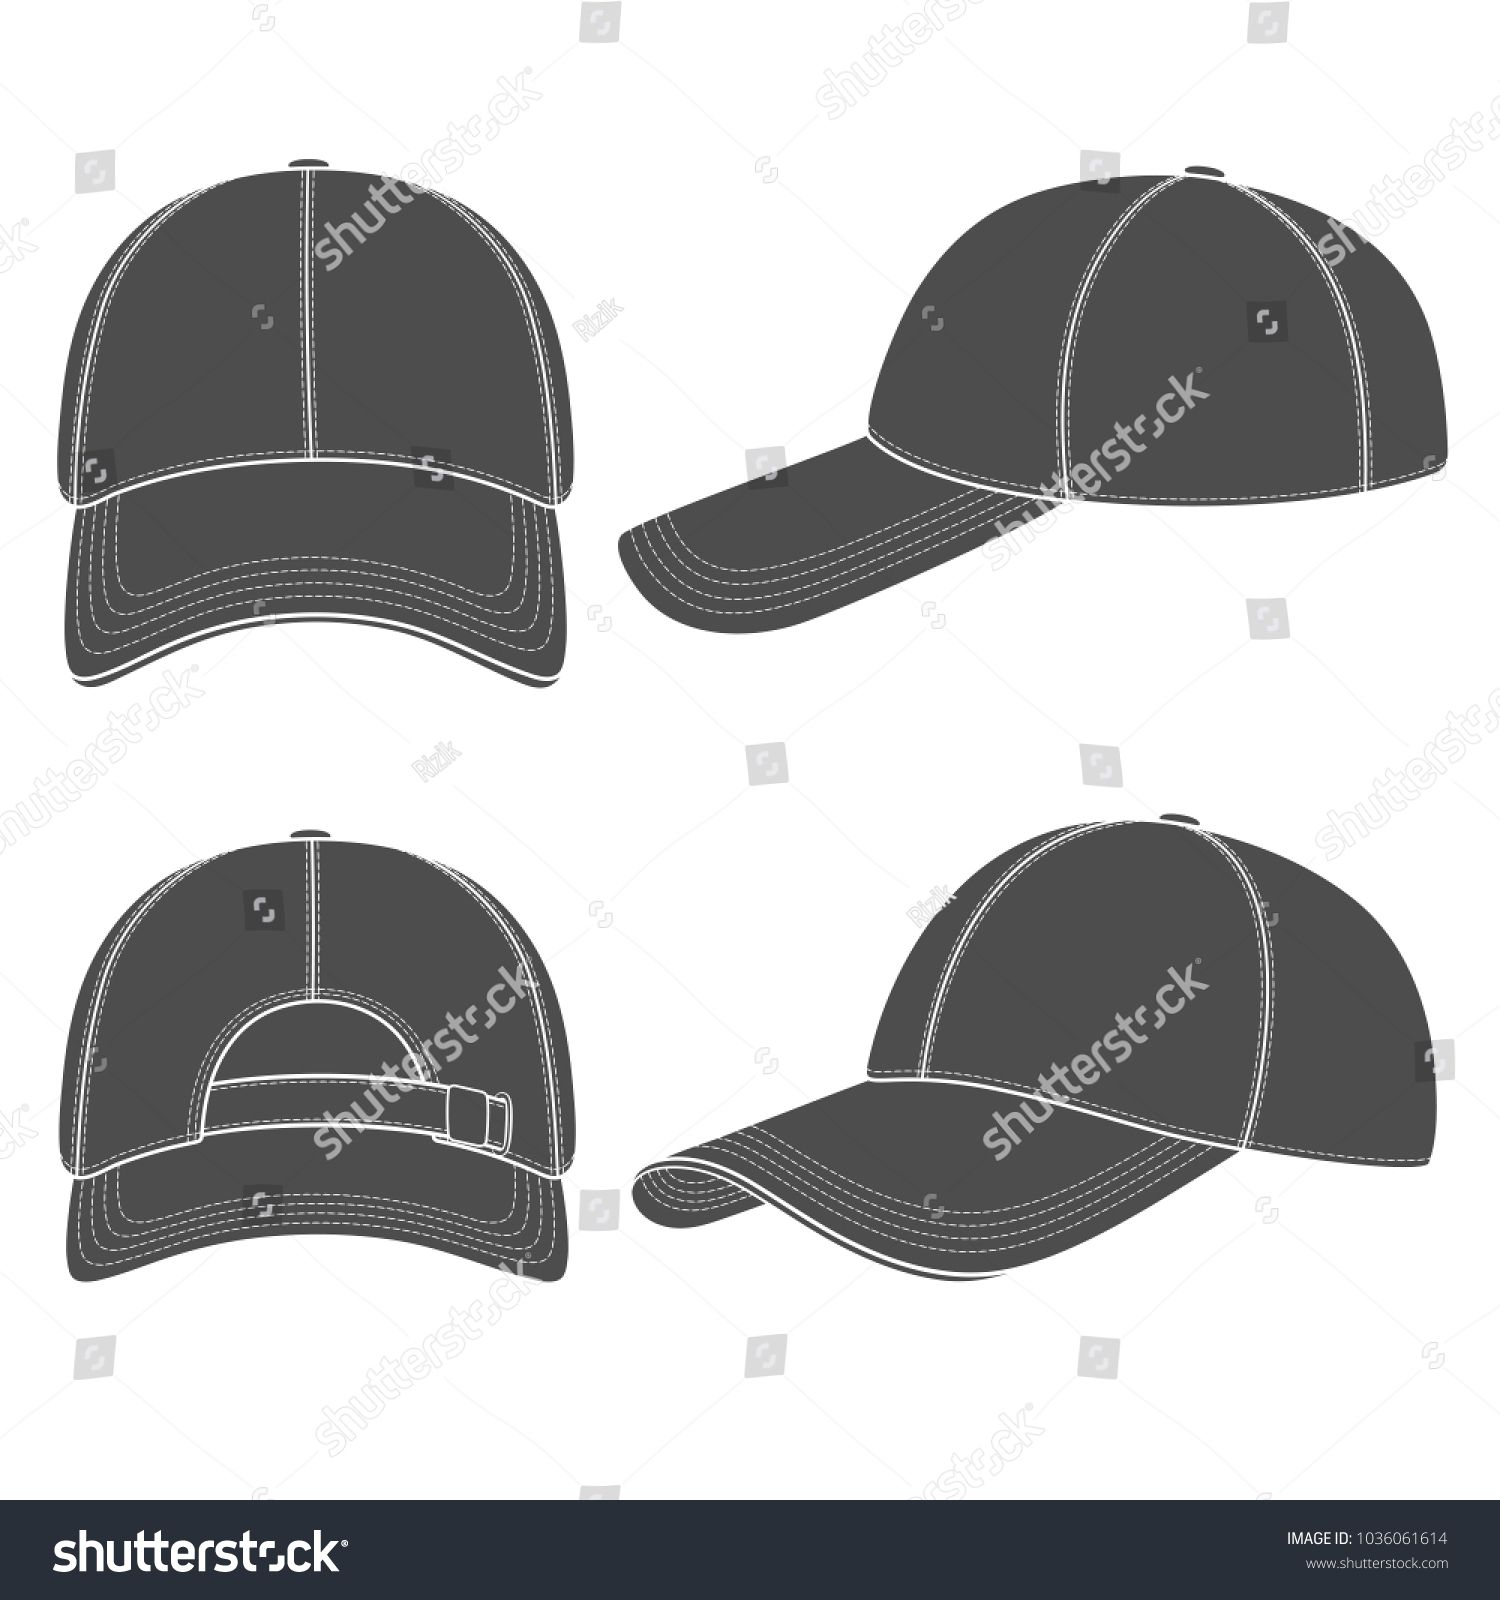 Set Of Black And White Illustrations With A Baseball Cap Isolated Vector Objects On White Backgro Black And White Illustration Illustration Graphic Design Art